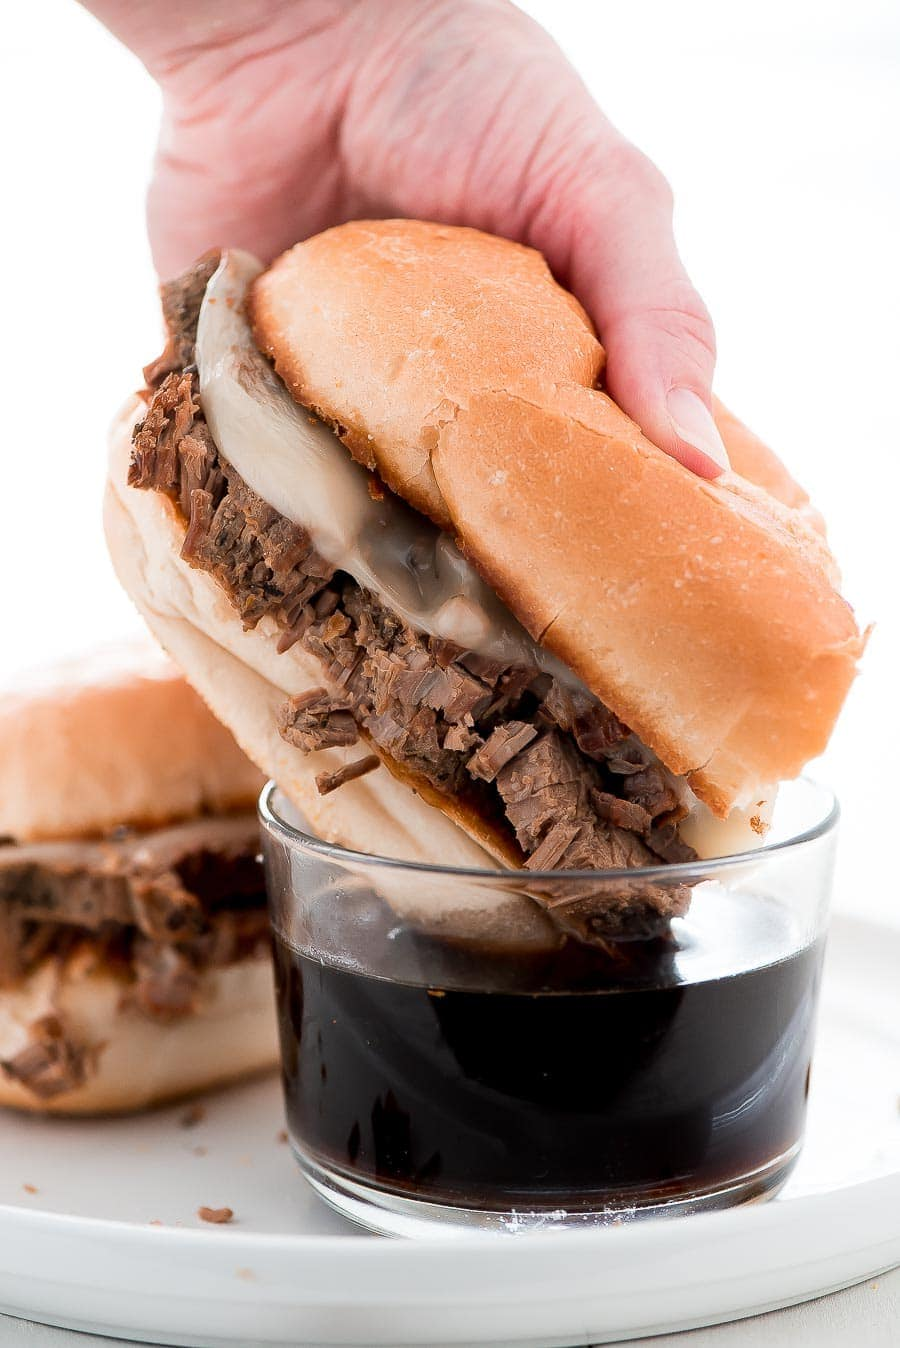 This French Dip Sandwich recipe includes hearty beef, melted provolone cheese, on a buttered toasted bun, and dipped in au jus.